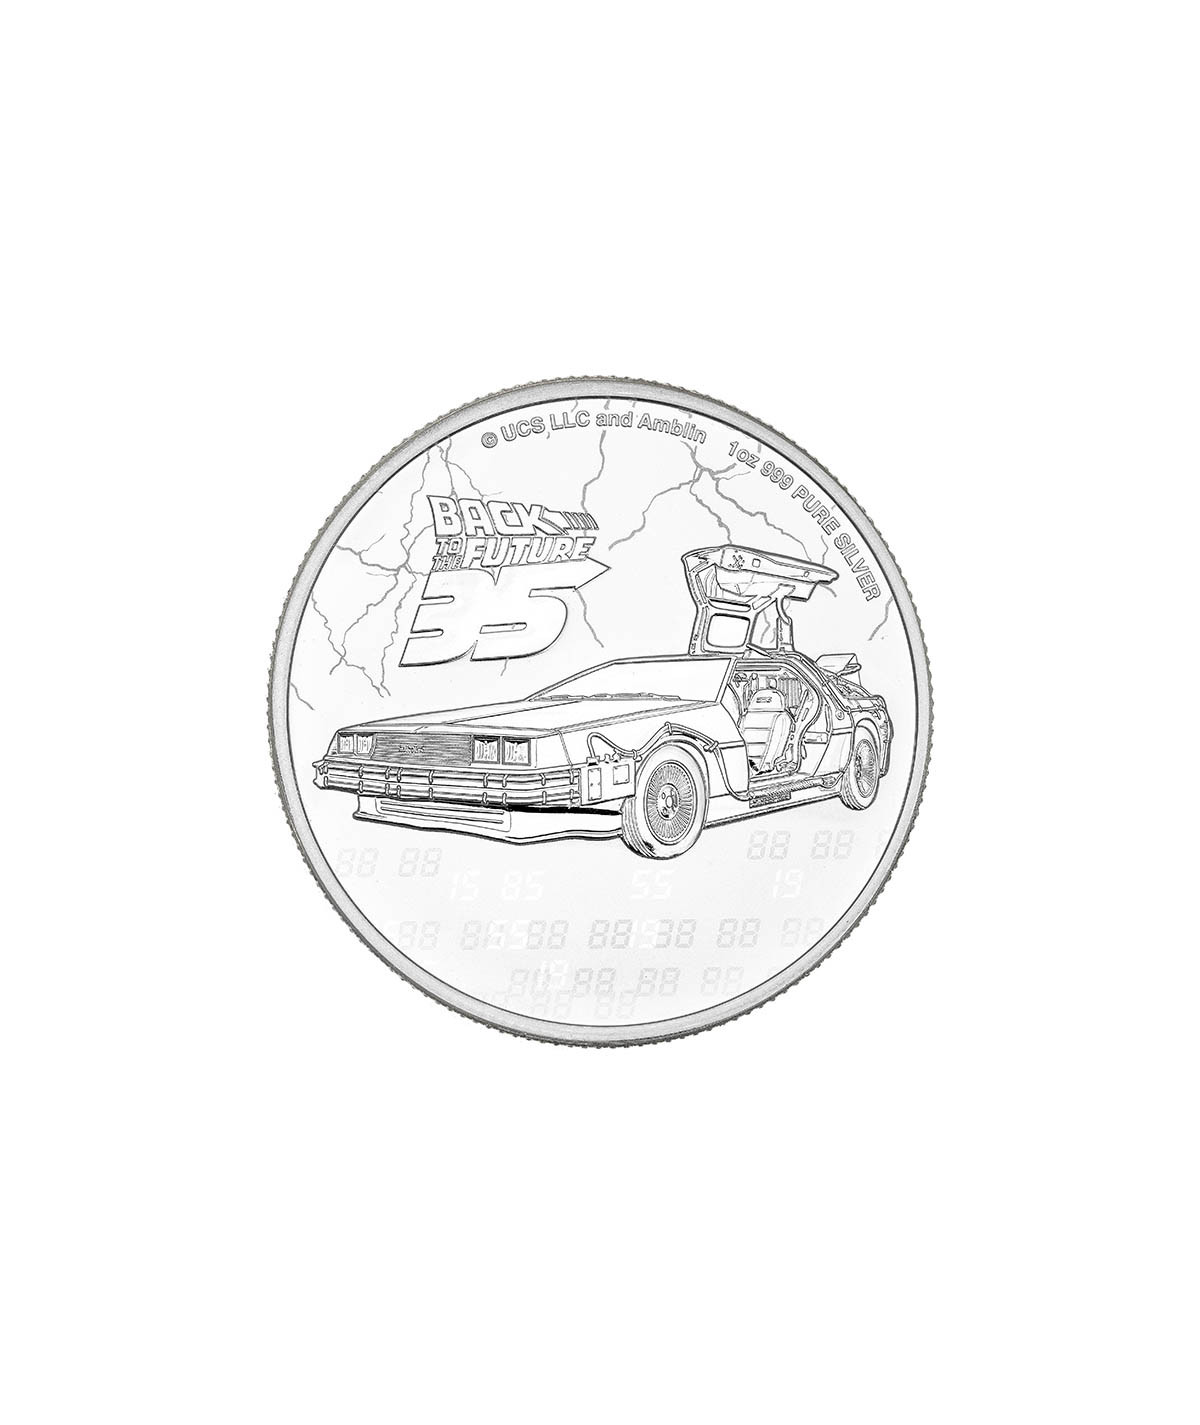 1oz Back to the Future Silver Coin from 2020 - 35th Anniversary Edition